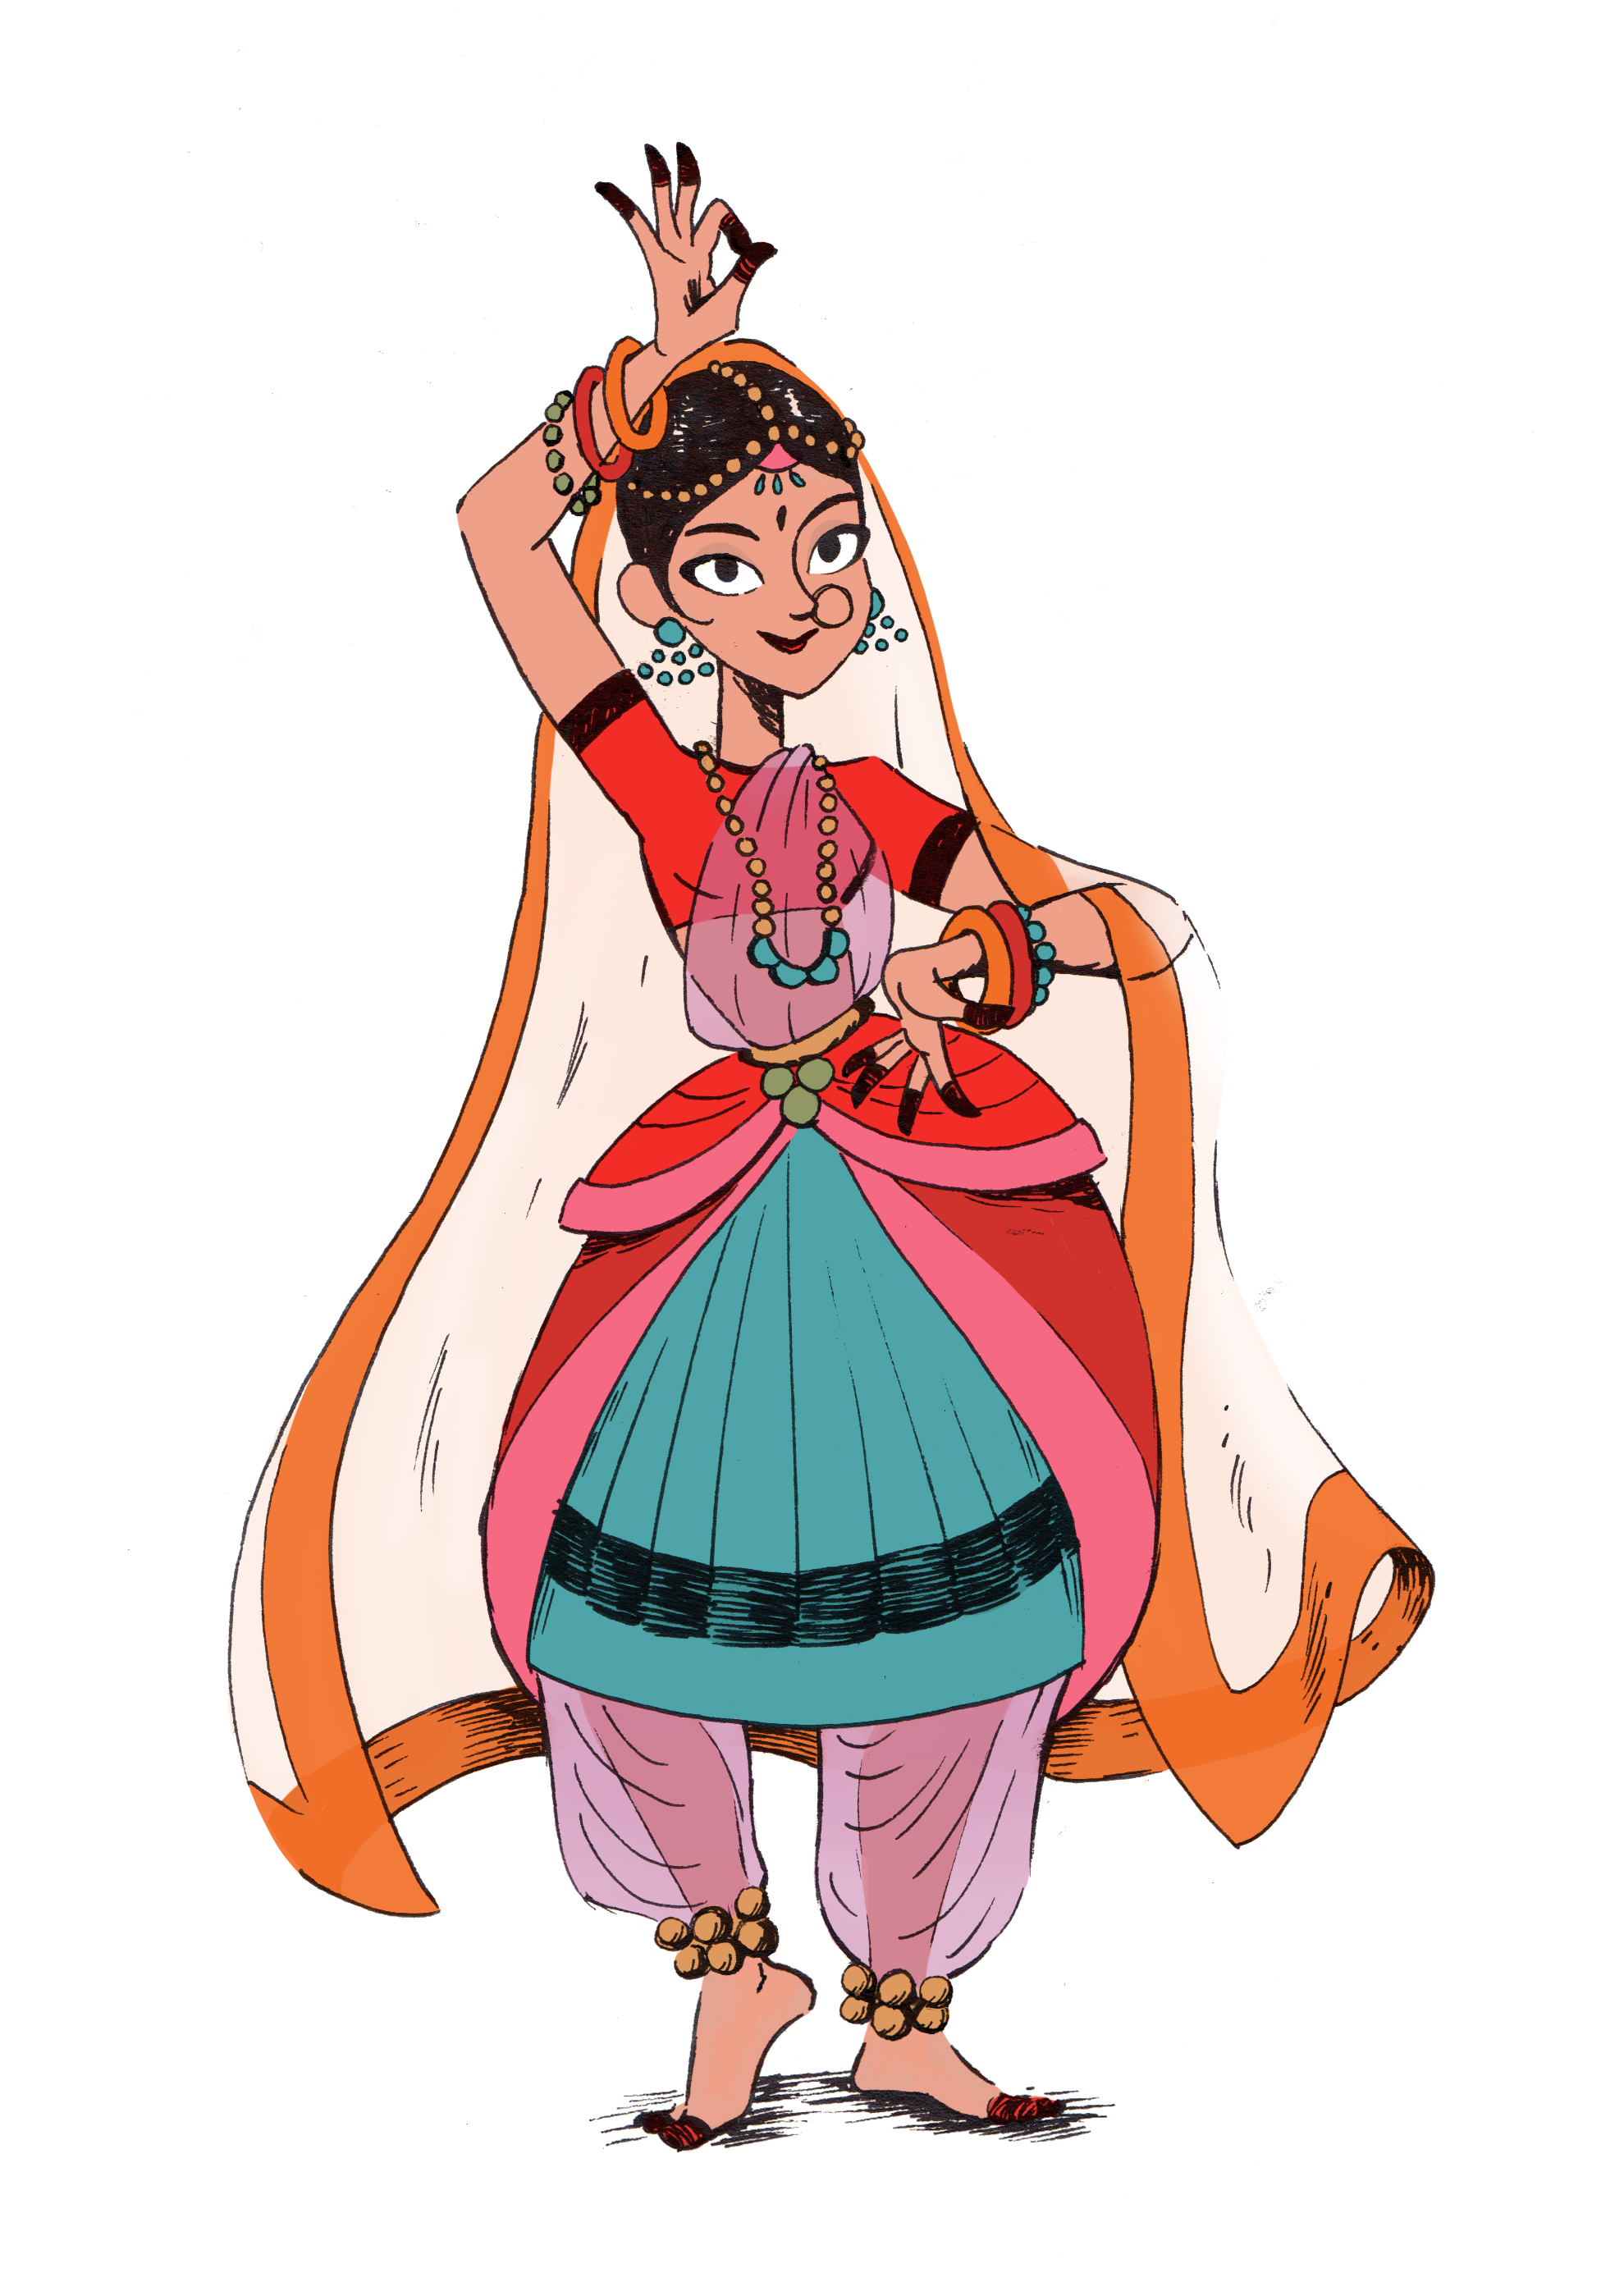 'Indian Dancer', an entry for the Character Design Challenge.